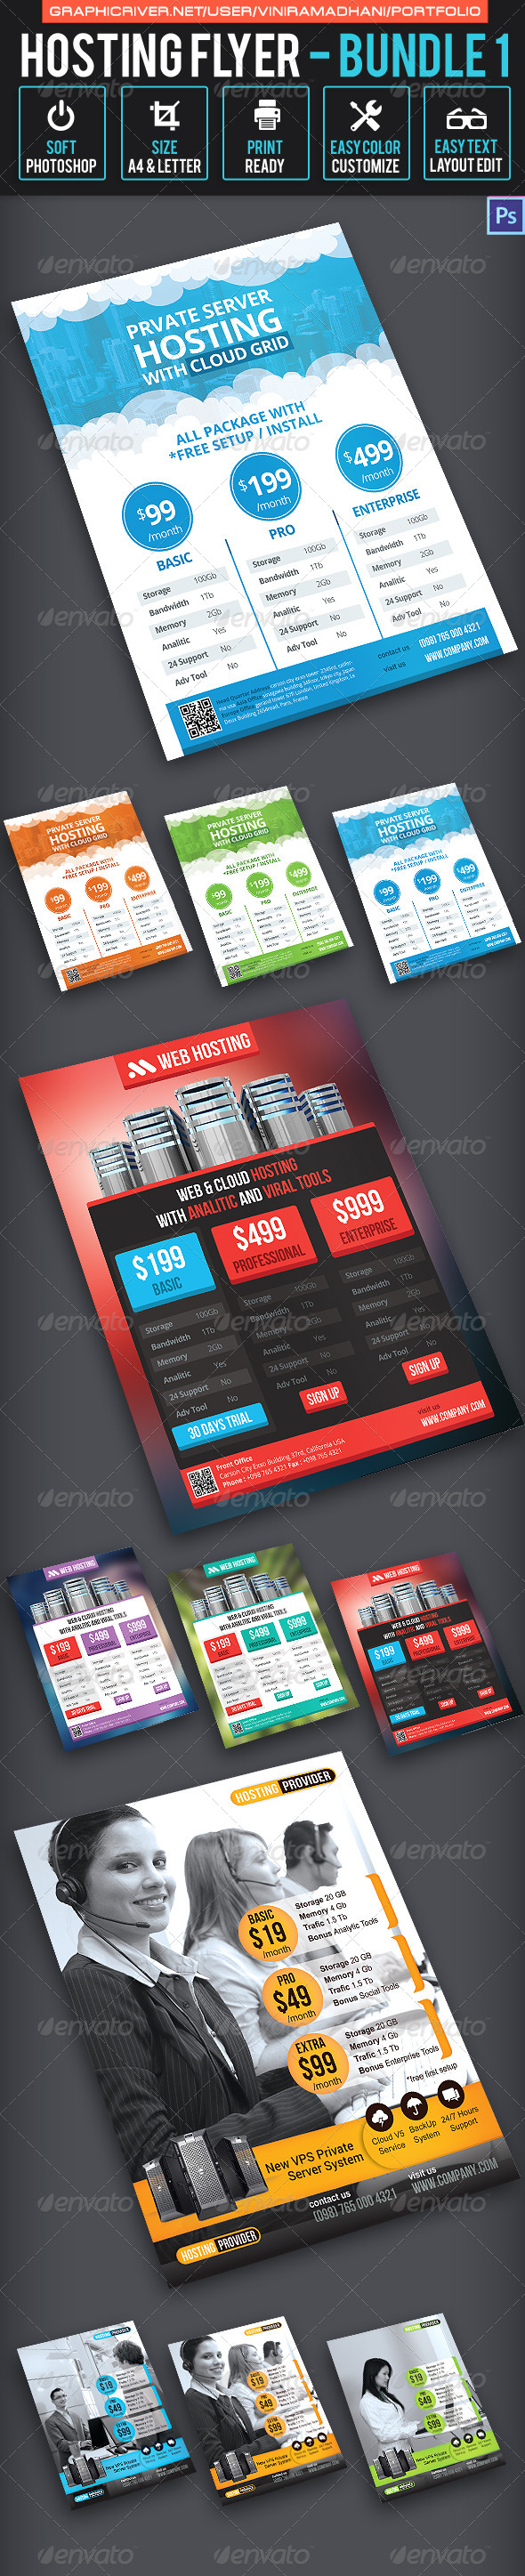 GraphicRiver Hosting Flyer Bundle 1 7325639